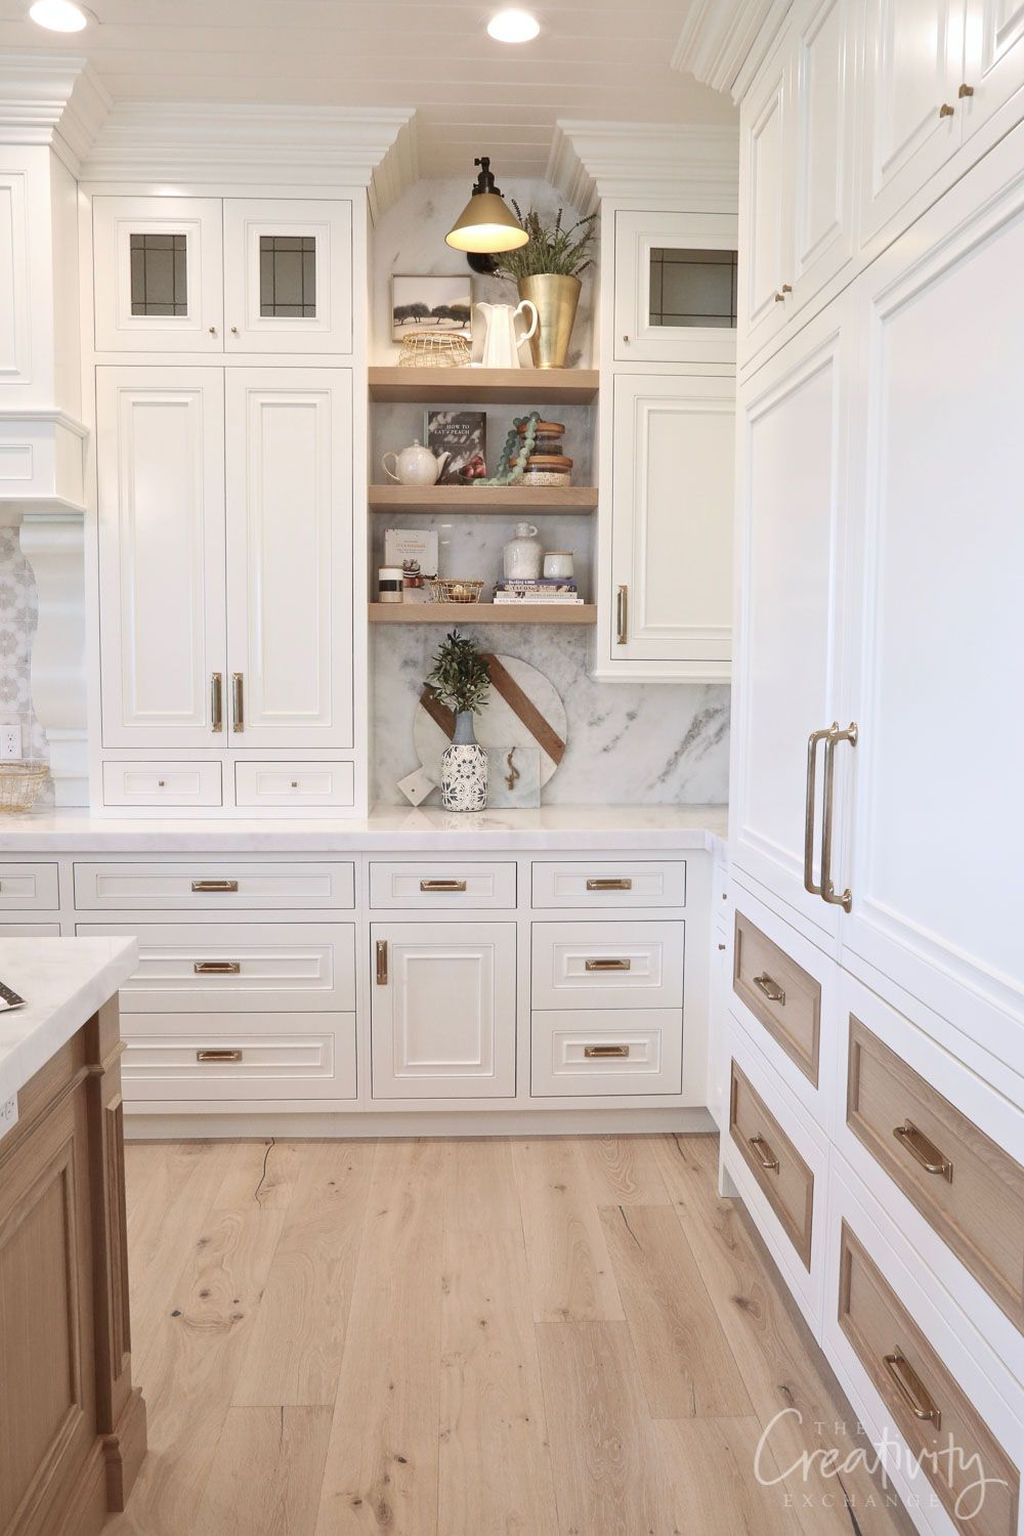 Top White Kitchen Cabinetry Design Ideas That Looks More Modern 06